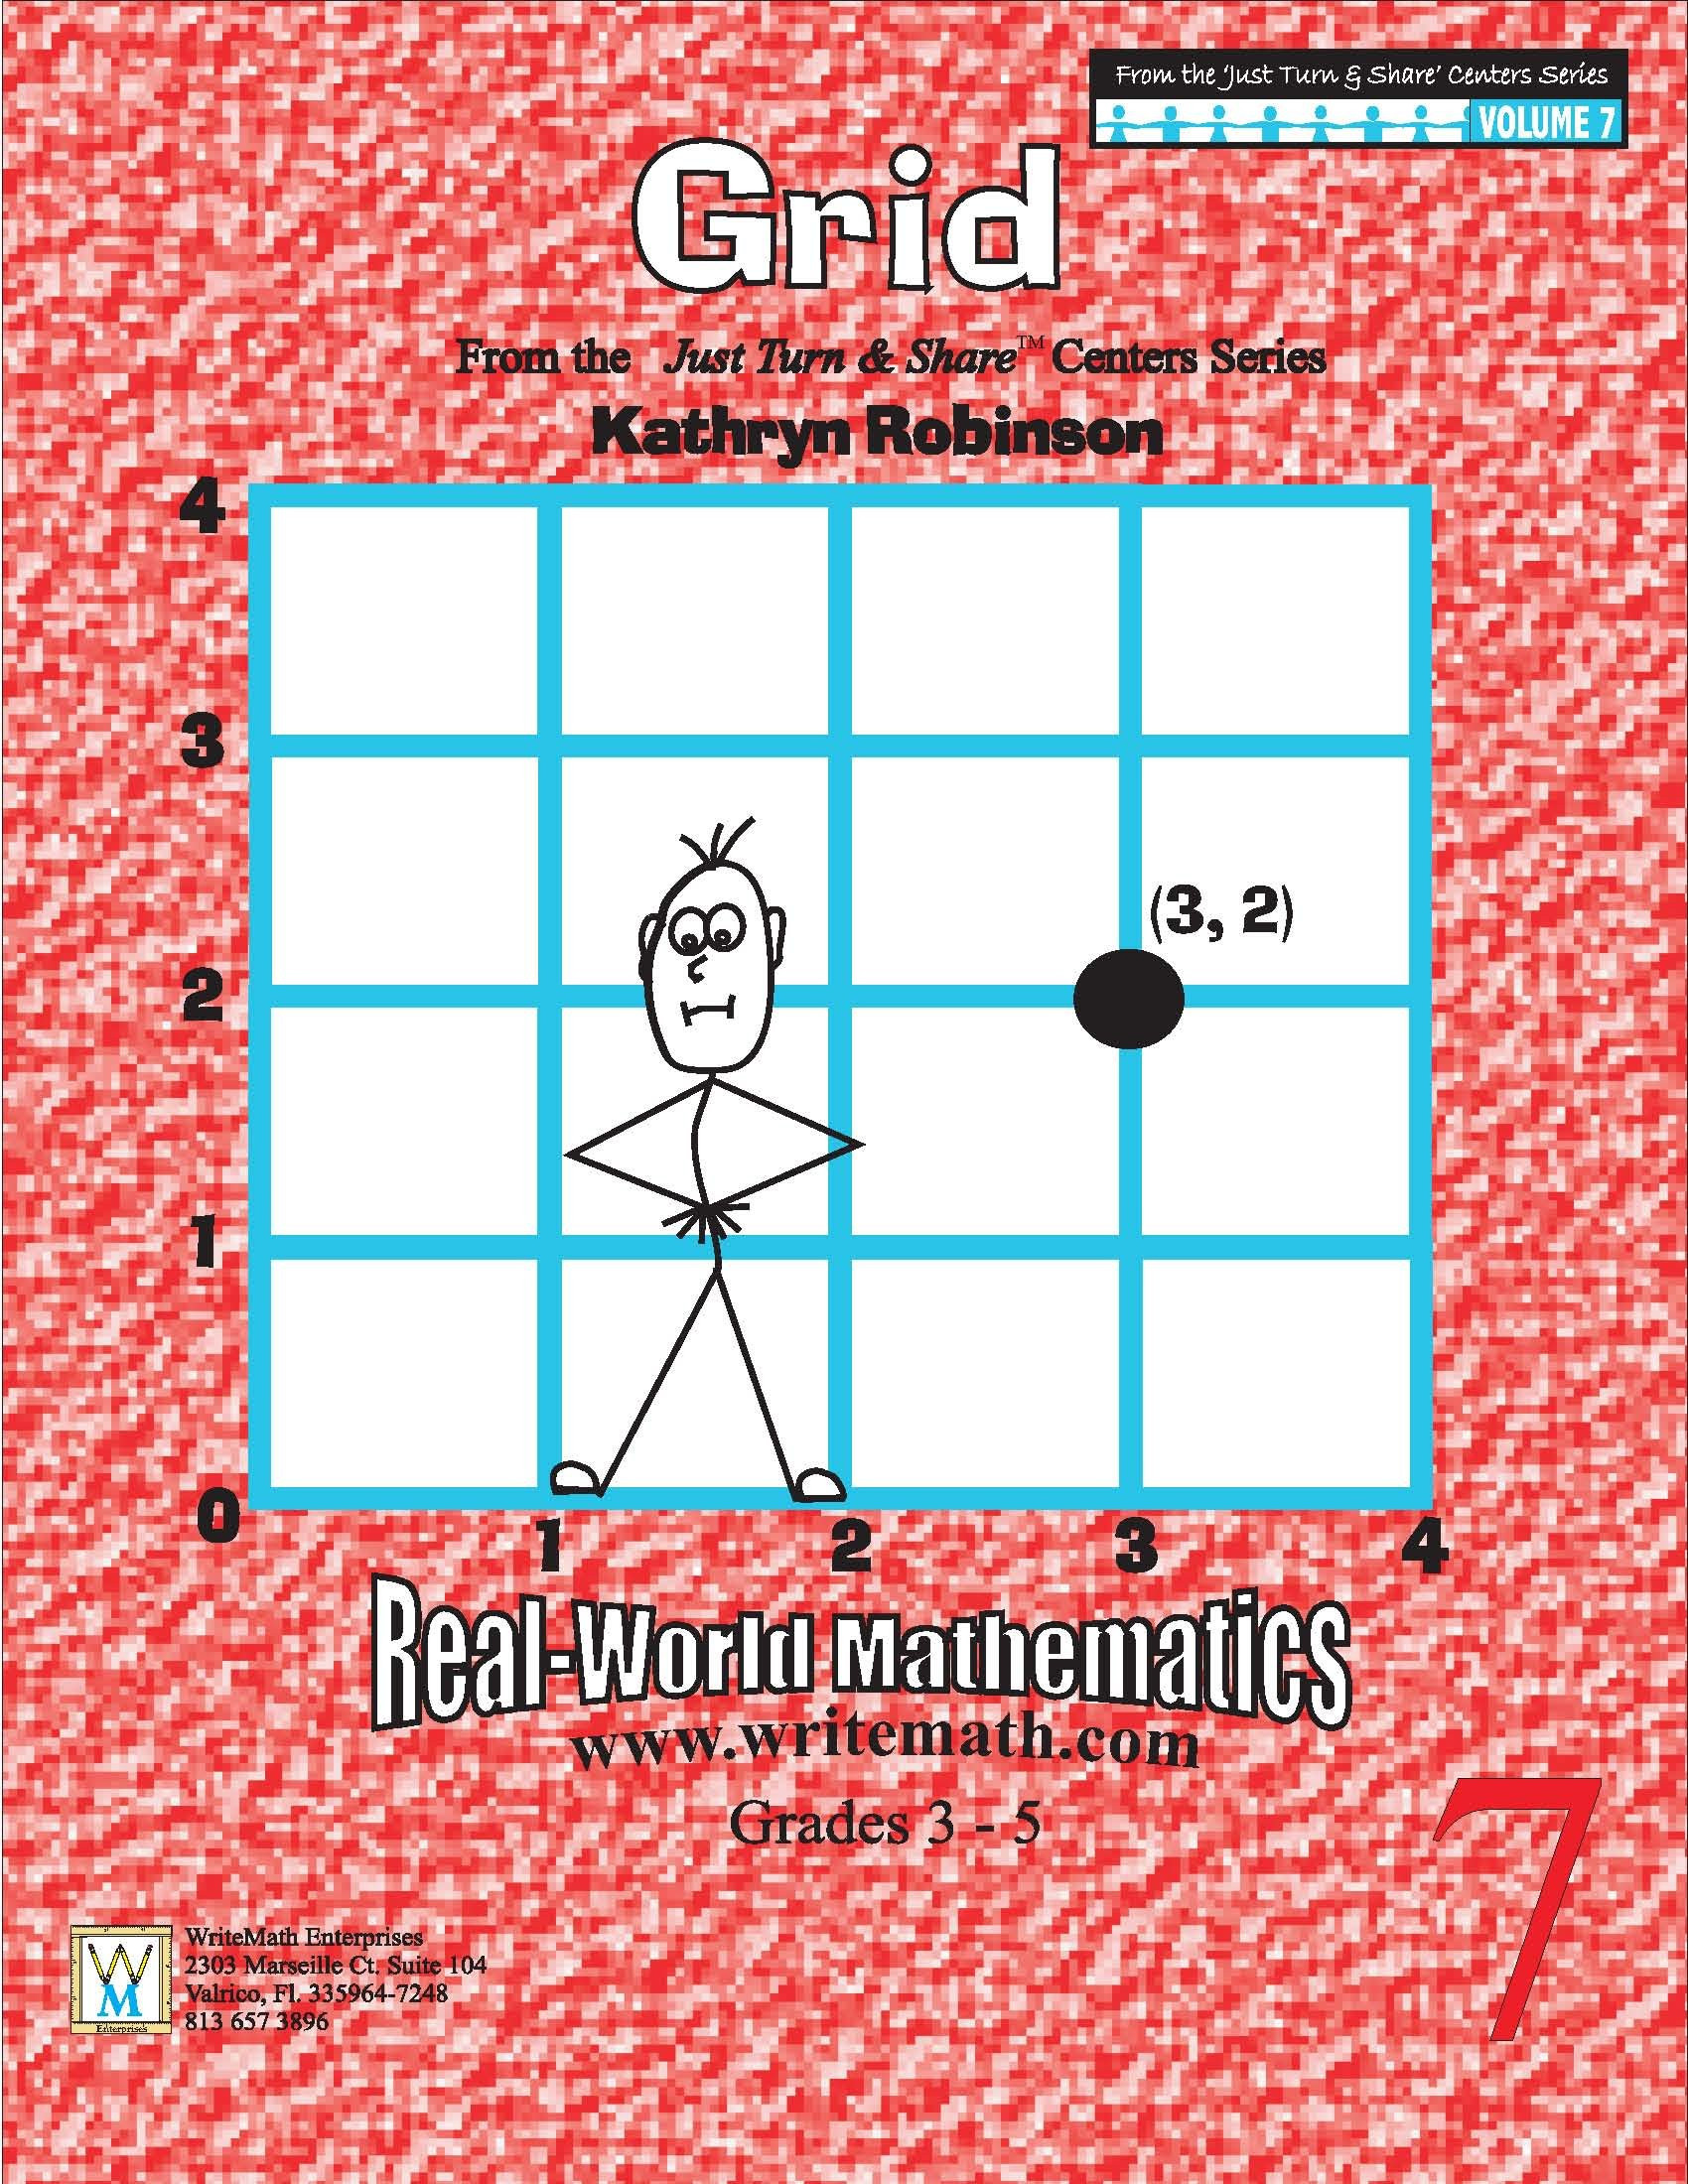 Coordinate Grids Worksheets 5th Grade Coordinate Grid Worksheets 3rd 4th 5th Grade Math Just